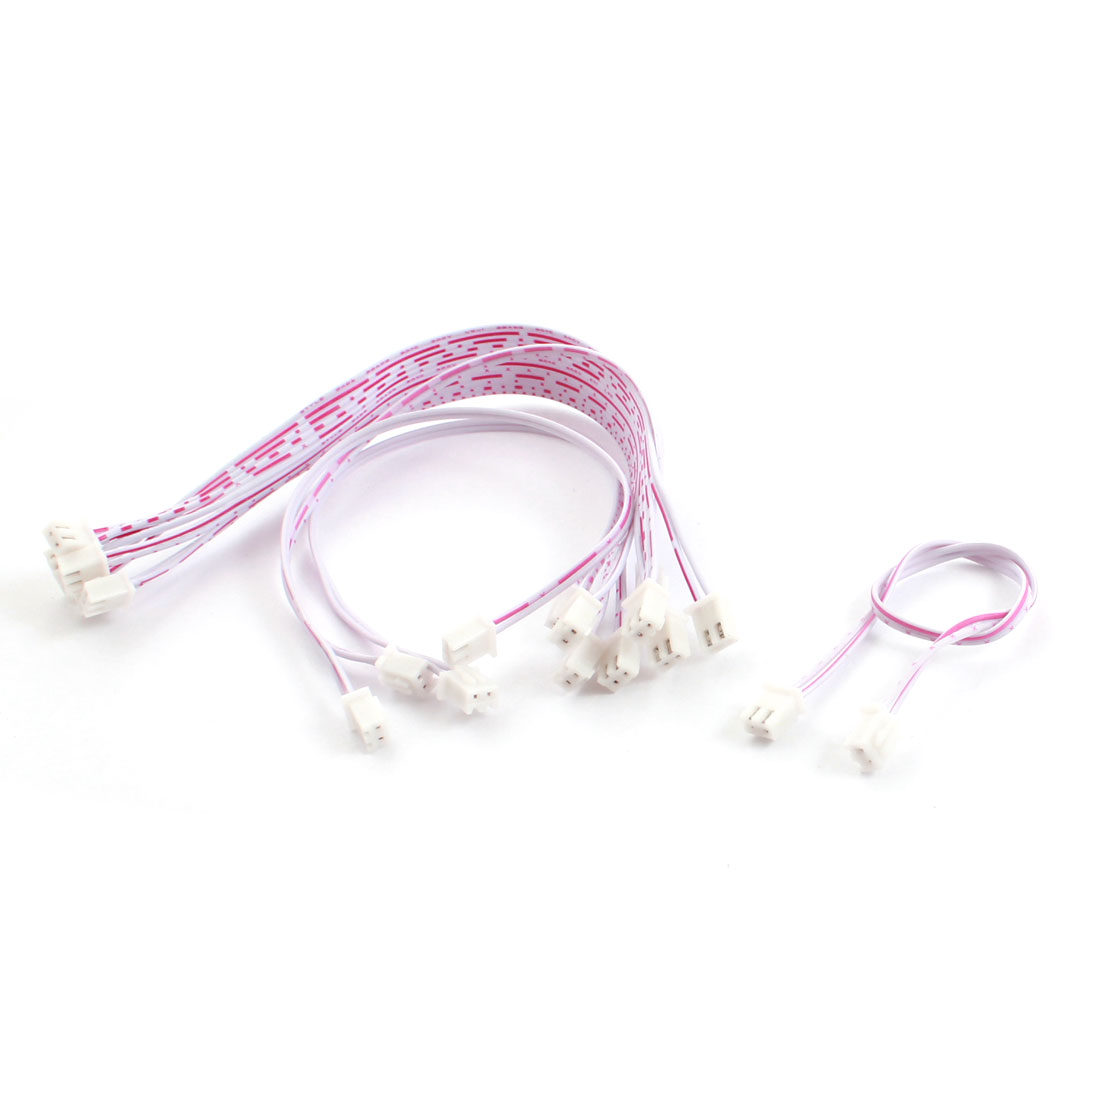 10 Pcs 2.54mm Pitch Dual Ends 1S 3.7V Lipo Balance JST-XH Connector Wire Extension Lead 20cm